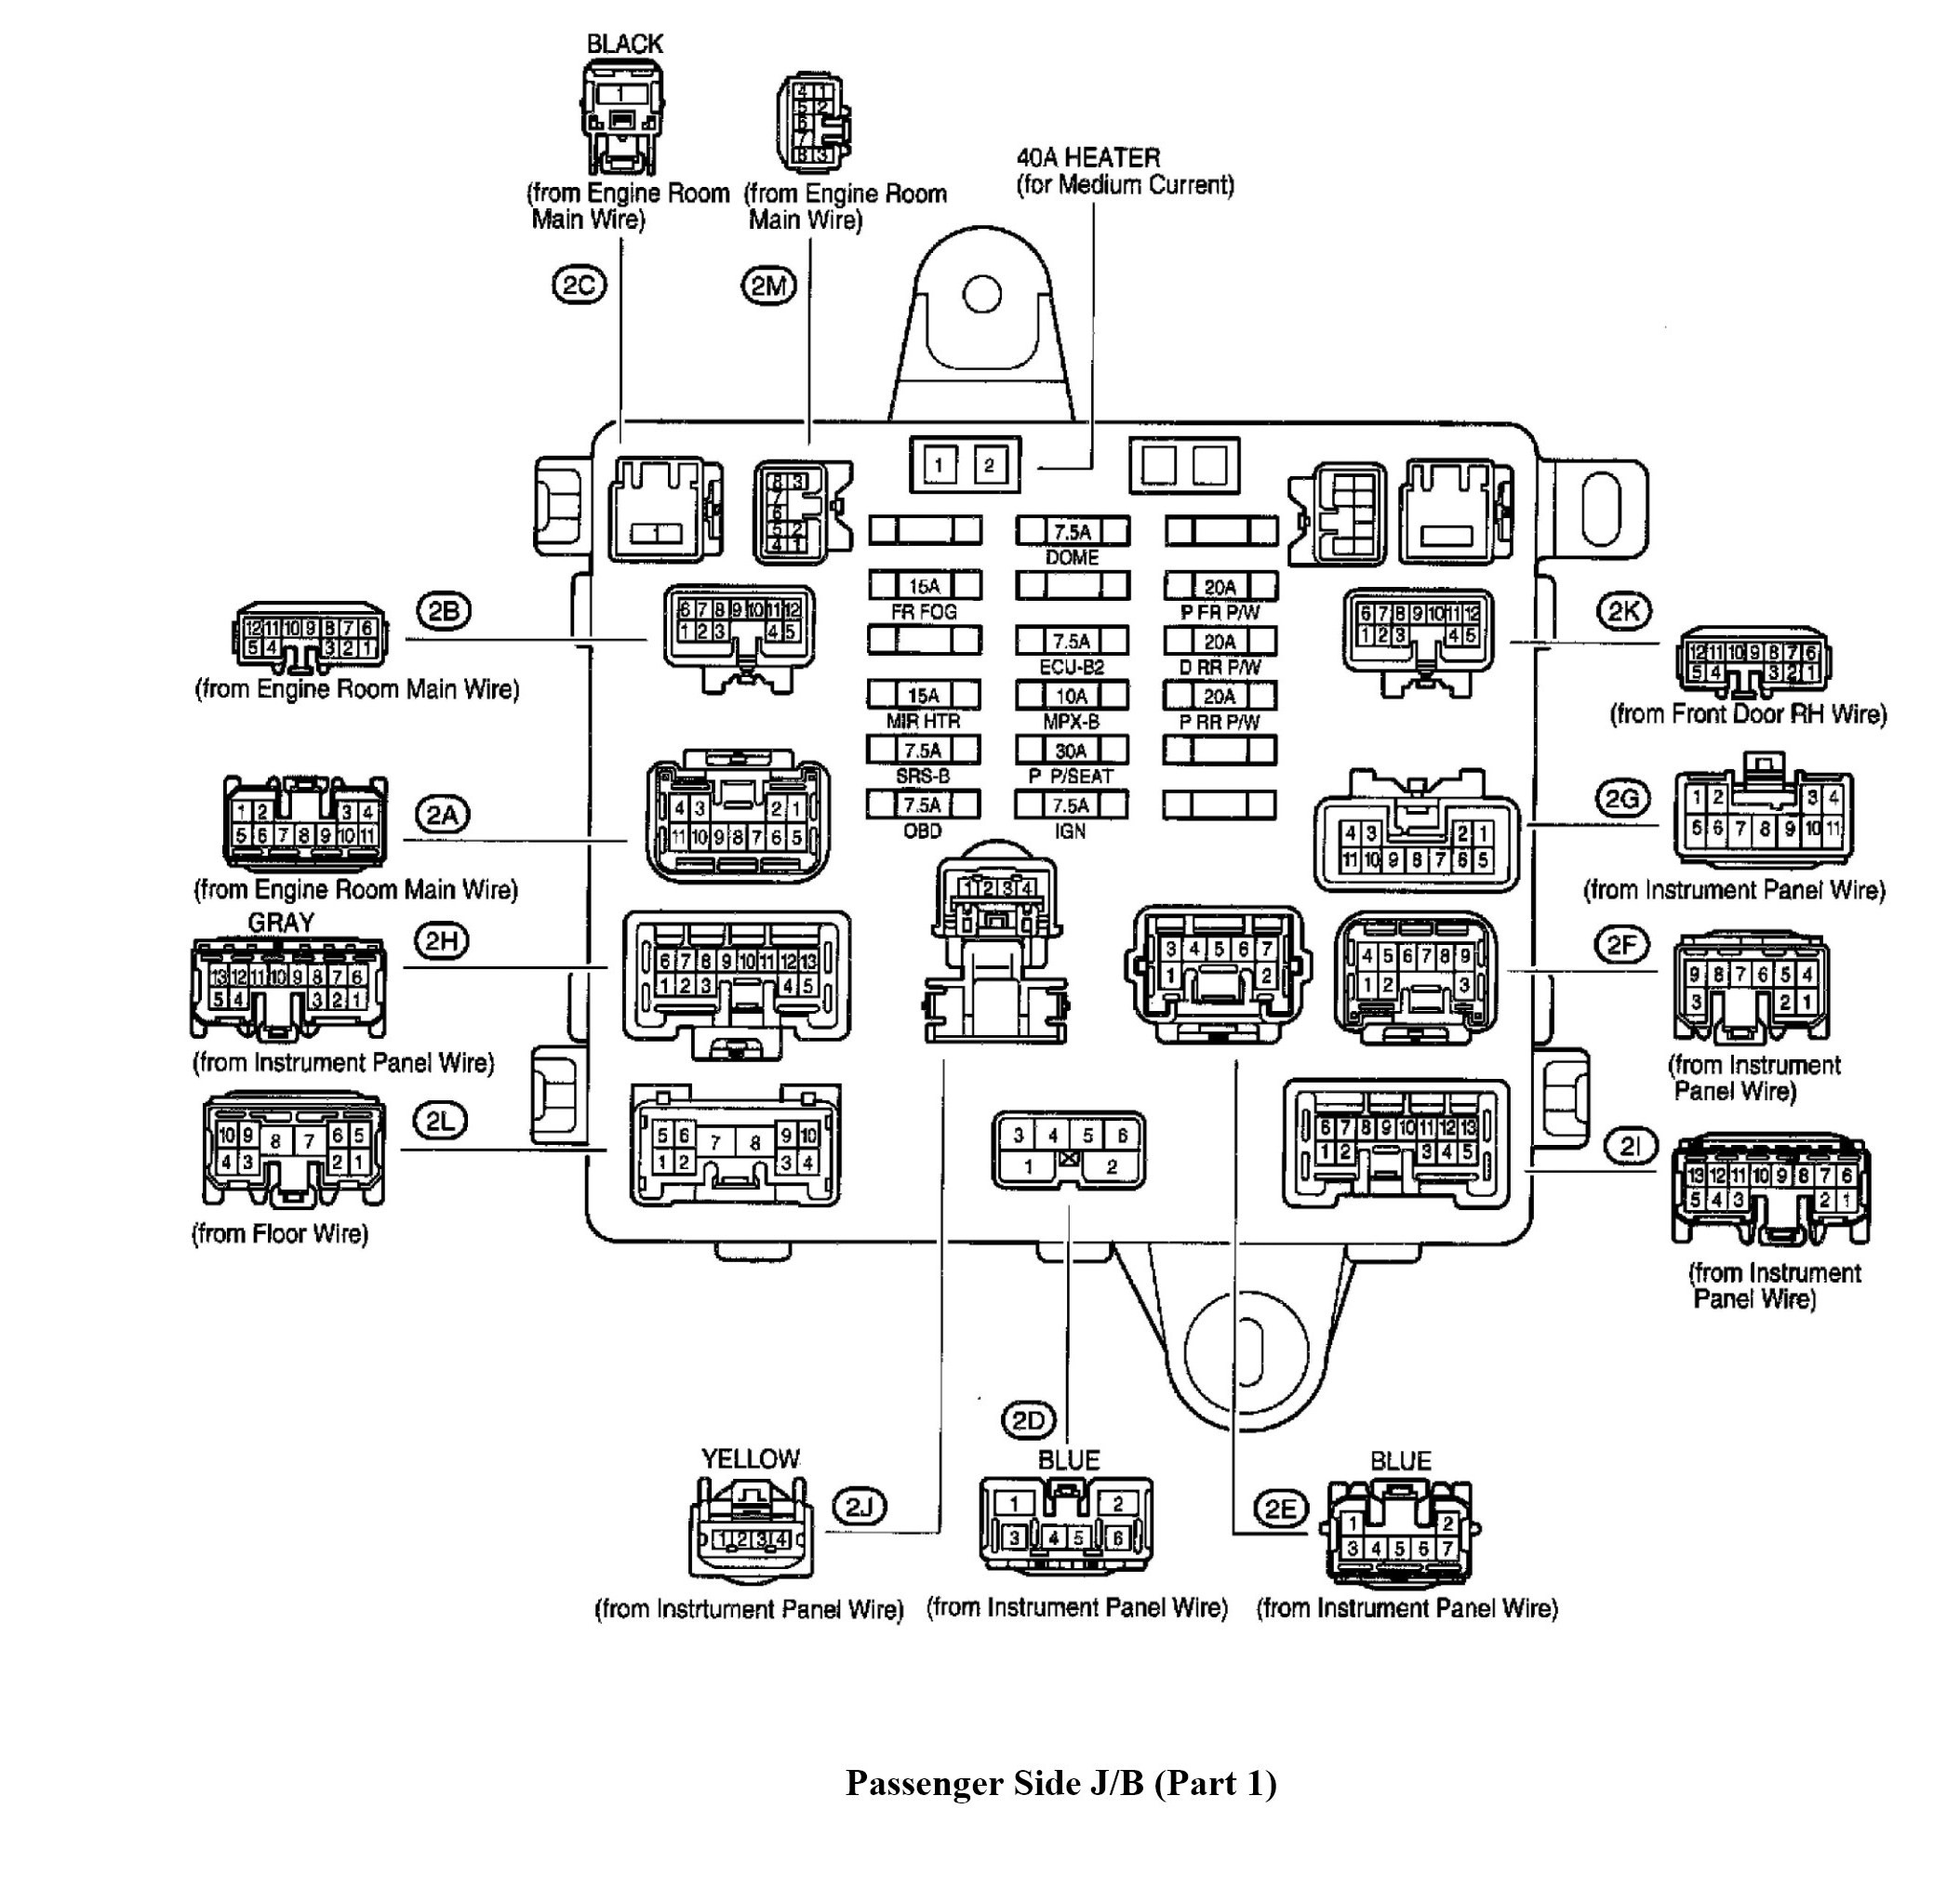 Diagram Alternator Lexus Es300 Fuse Box Diagram Full